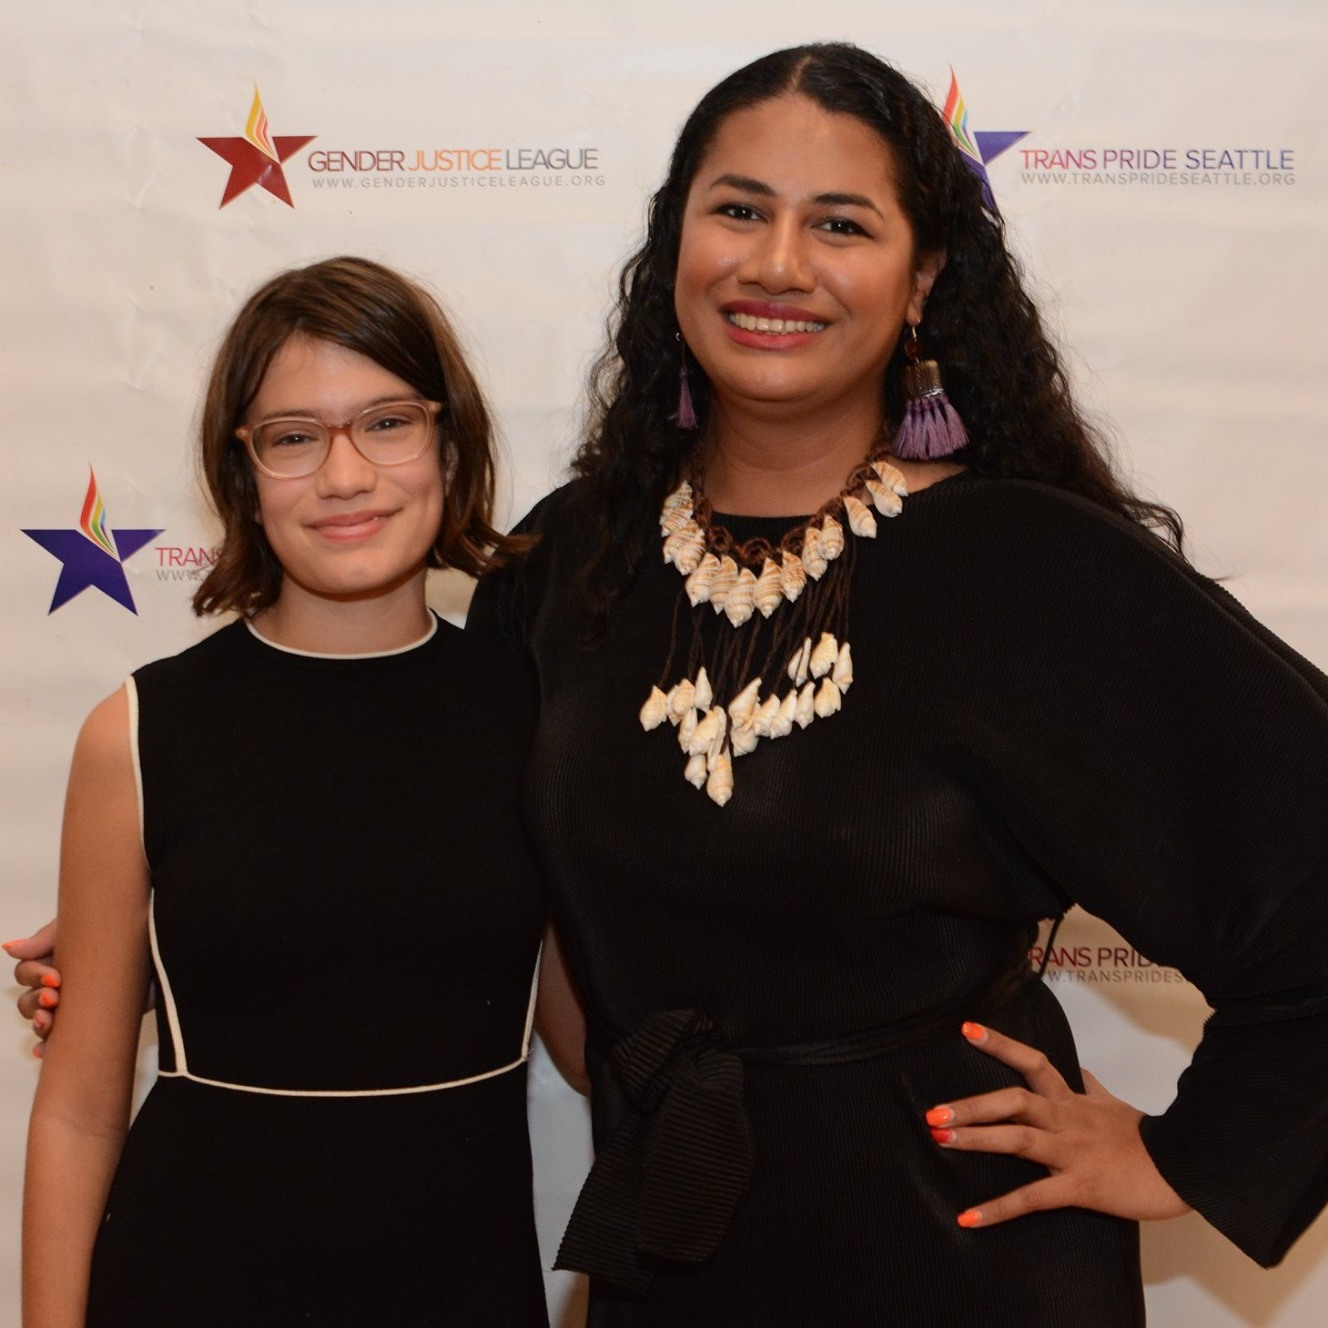 Two award winners at the 2019 Gender Justice Awards